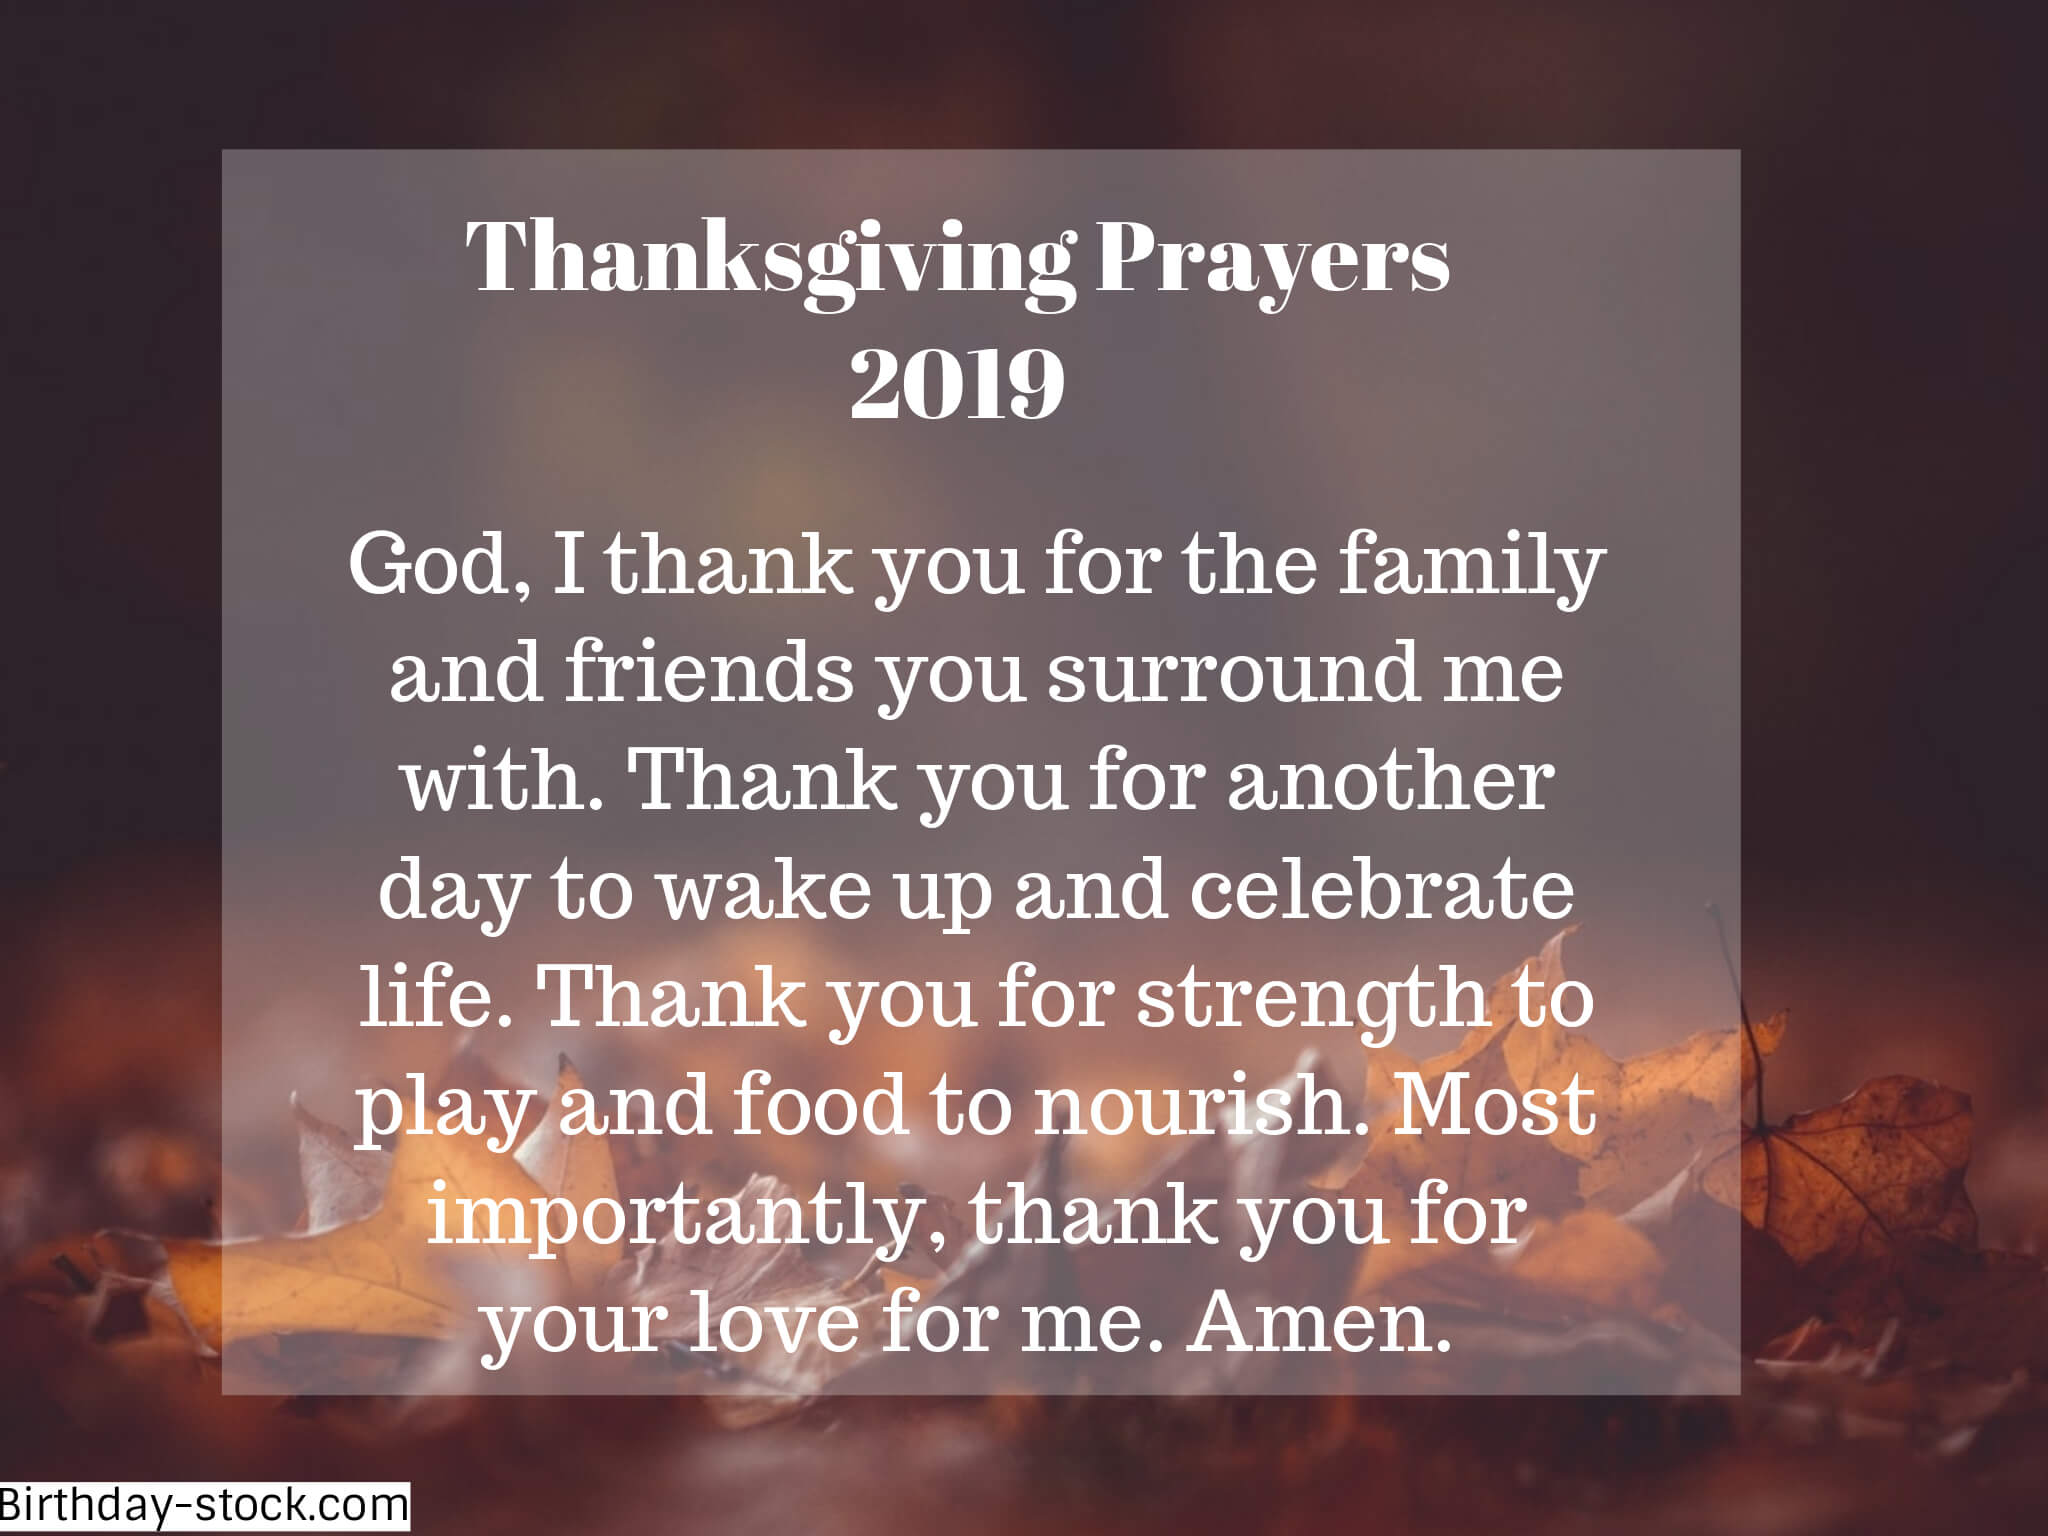 Short Thanksgiving Prayers 2019 for School Children Families Teachers